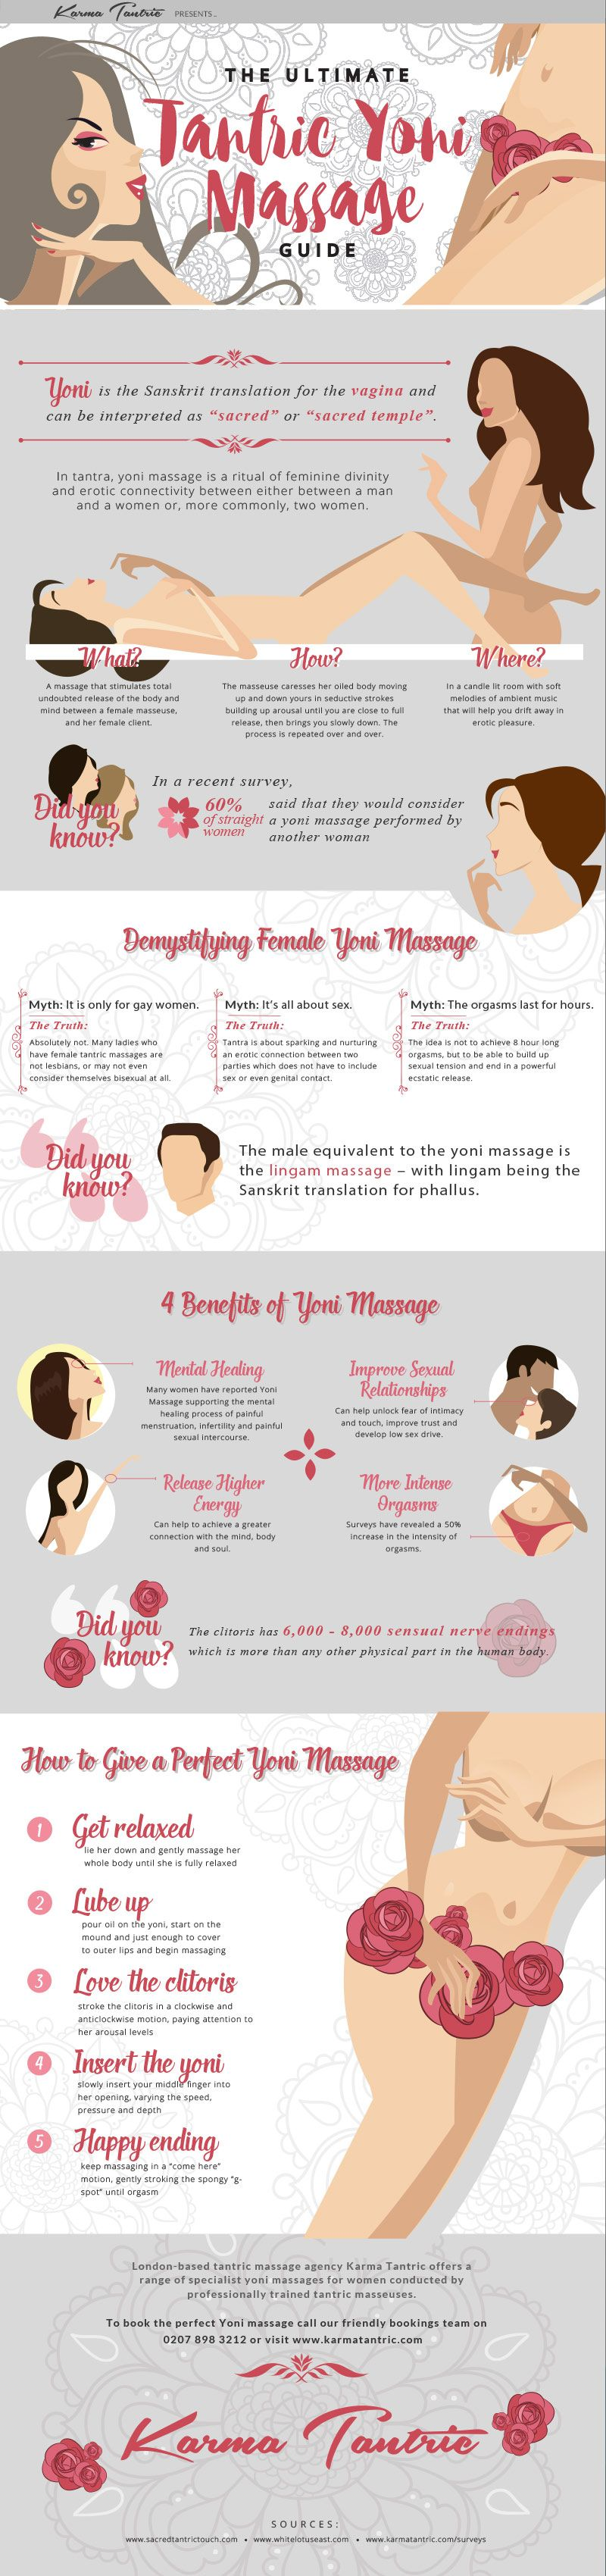 Yoni massage tips